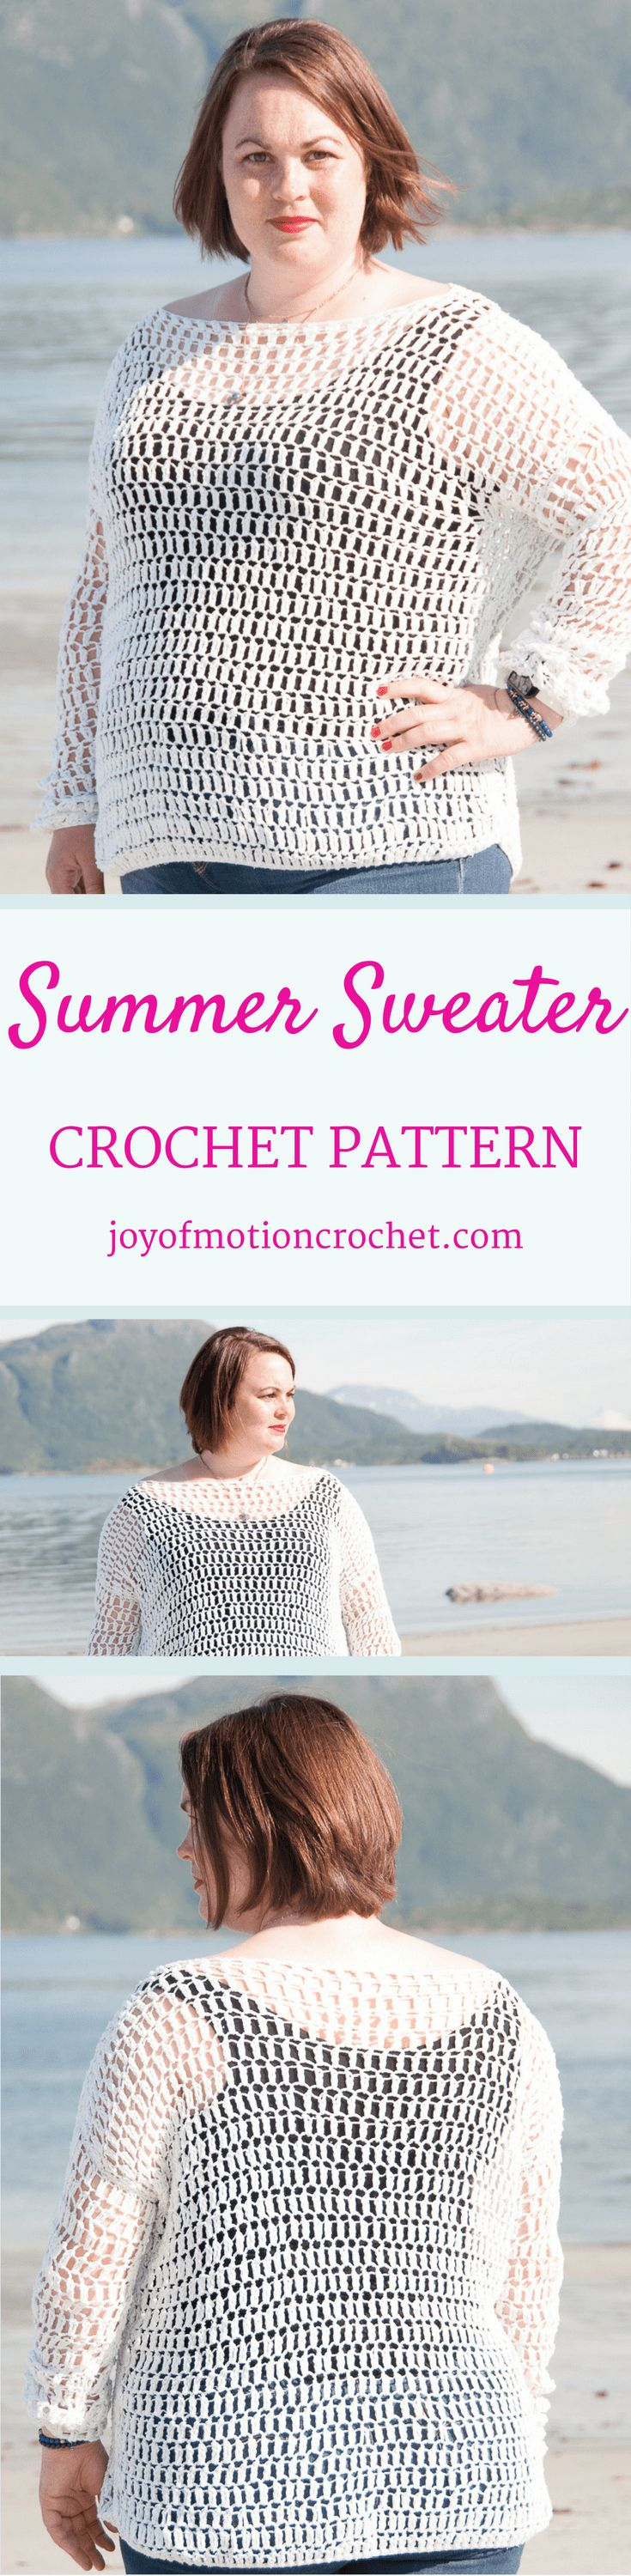 The Summer Sweater a crochet pattern. Woman's sweater crochet pattern with skill level easy. Make this fashionable crochet sweater with you own hook & yarn. Sweater crochet pattern easy for her . Crochet sweater | woman's crochet sweater | crochet pattern for her | fashionable crochet sweater | interesting crochet sweater | click to learn more or repin to save it forever. via @http://pinterest.com/joyofmotion/